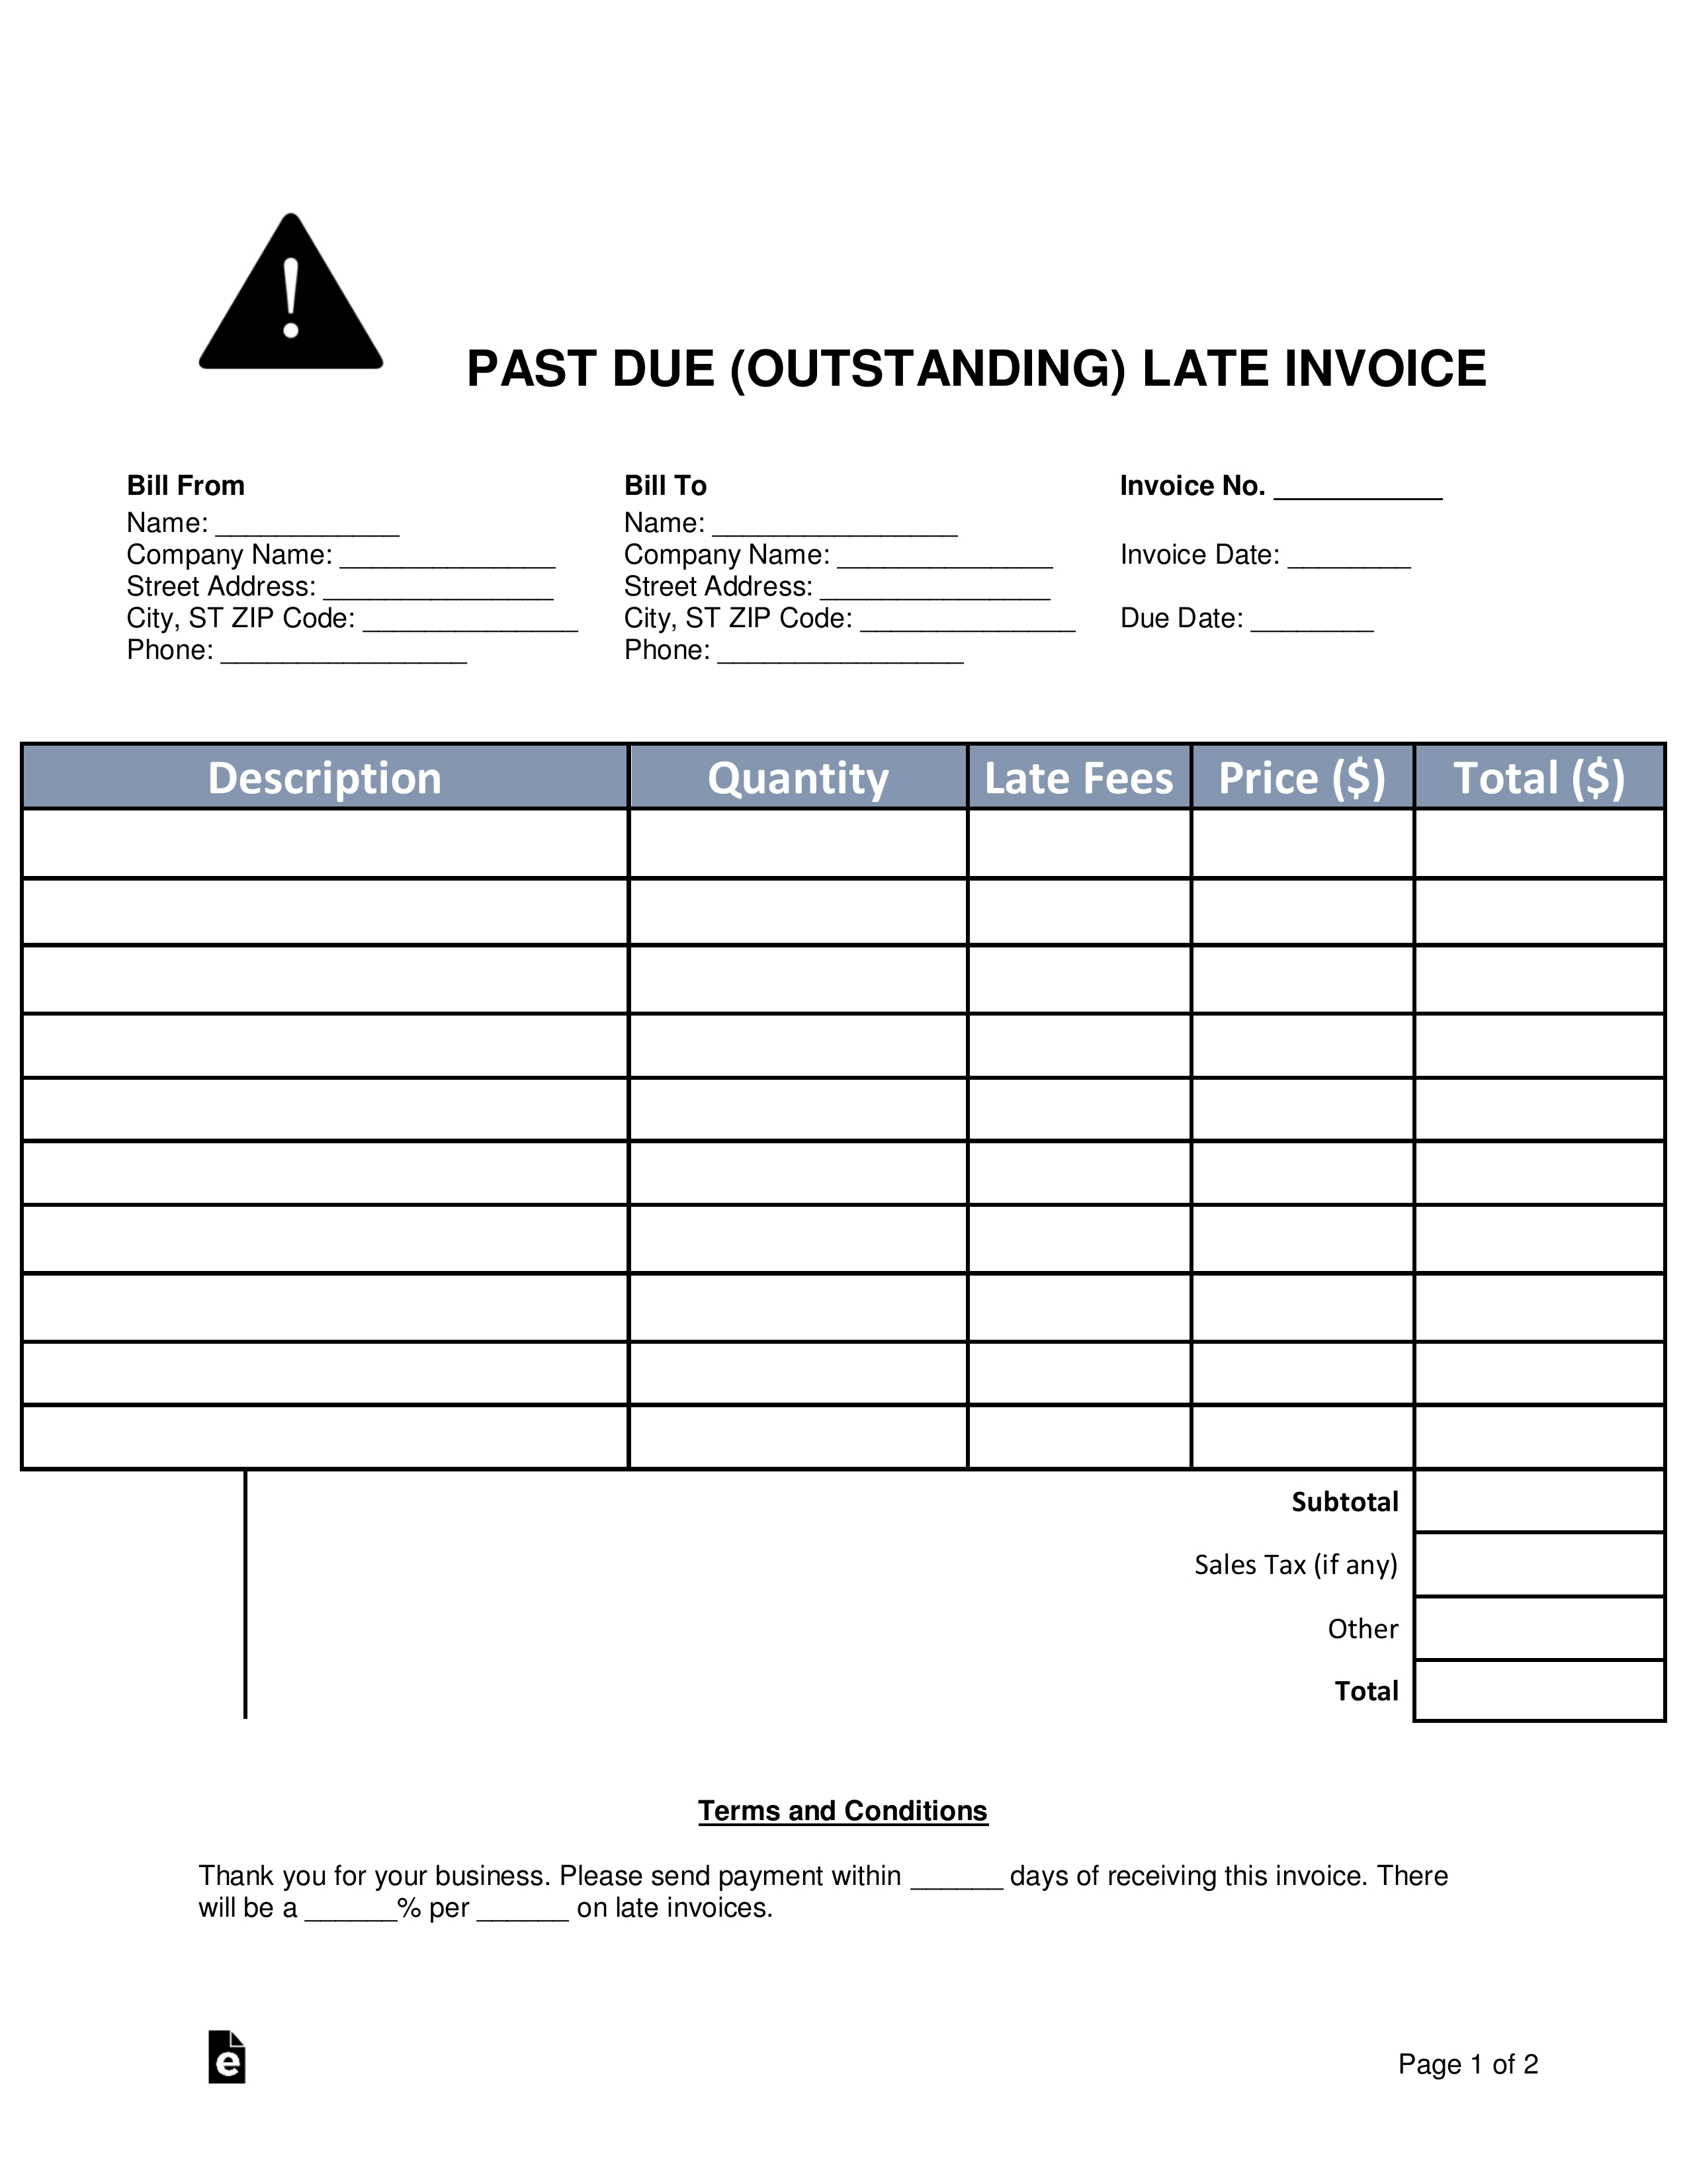 past due invoice template colonarsd7 invoice templates for cleaning business